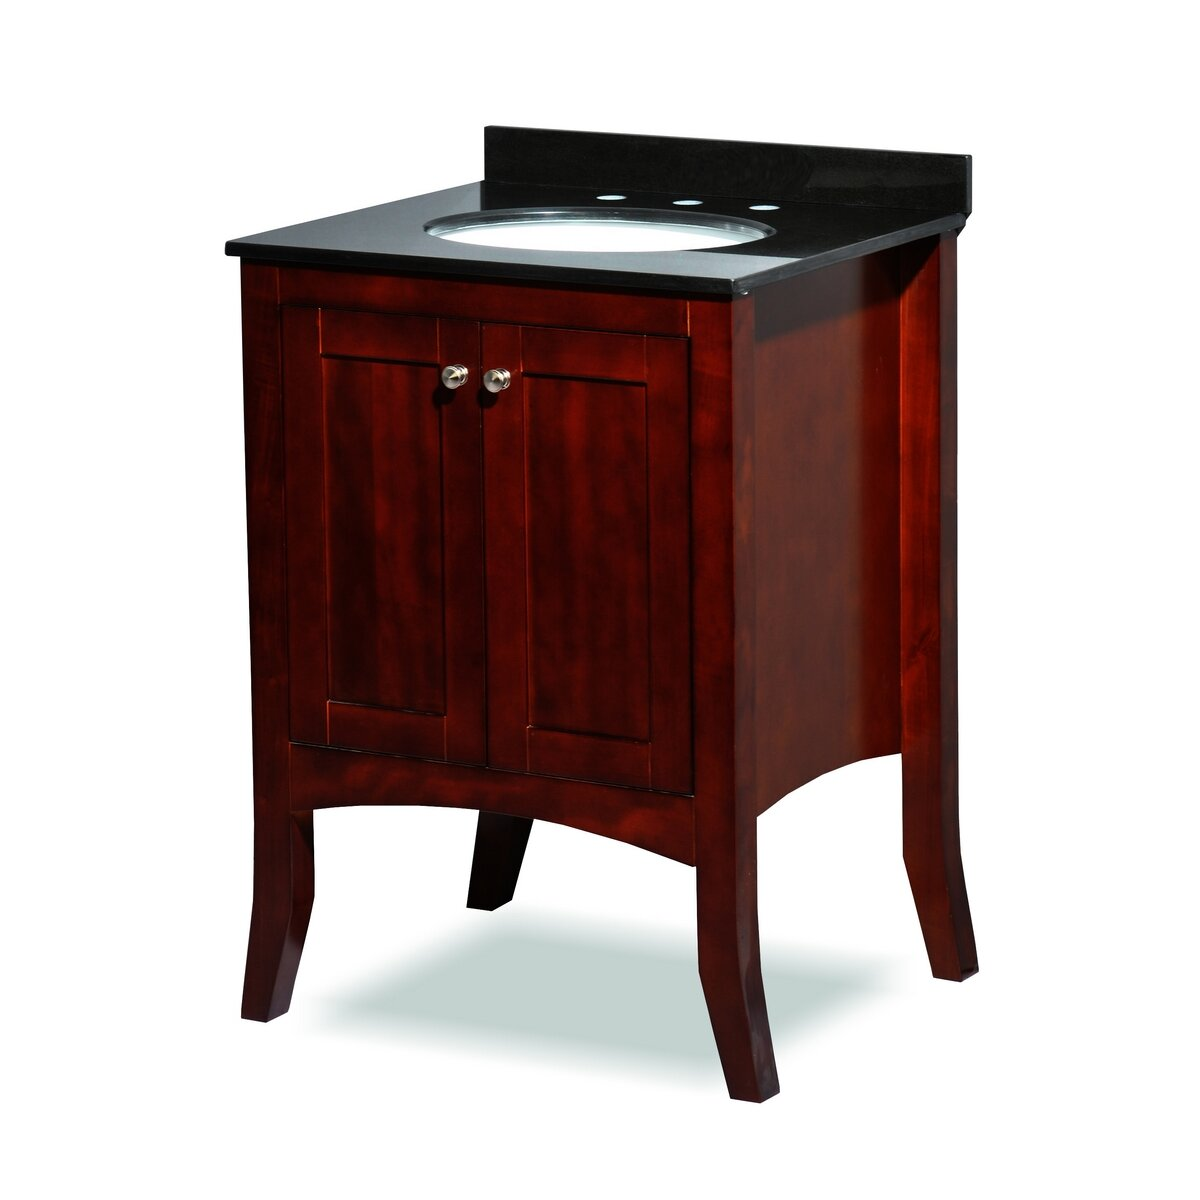 Belmont decor charleston 24 single bathroom vanity set for Single vanity bathroom ideas